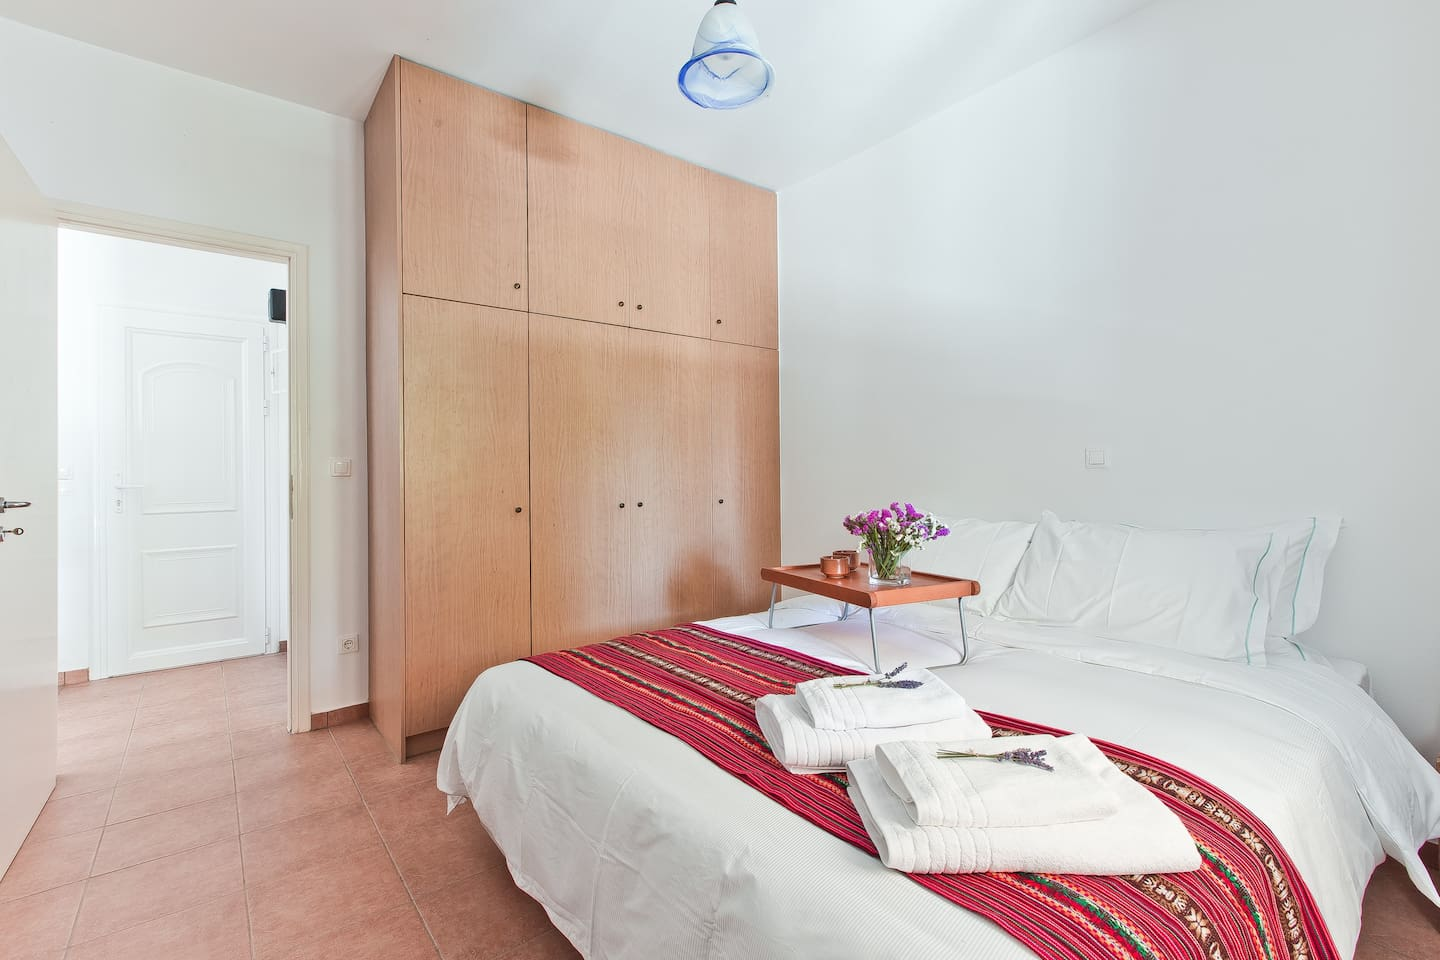 Bedroom with double bed 2.00 X 1.60 and closet